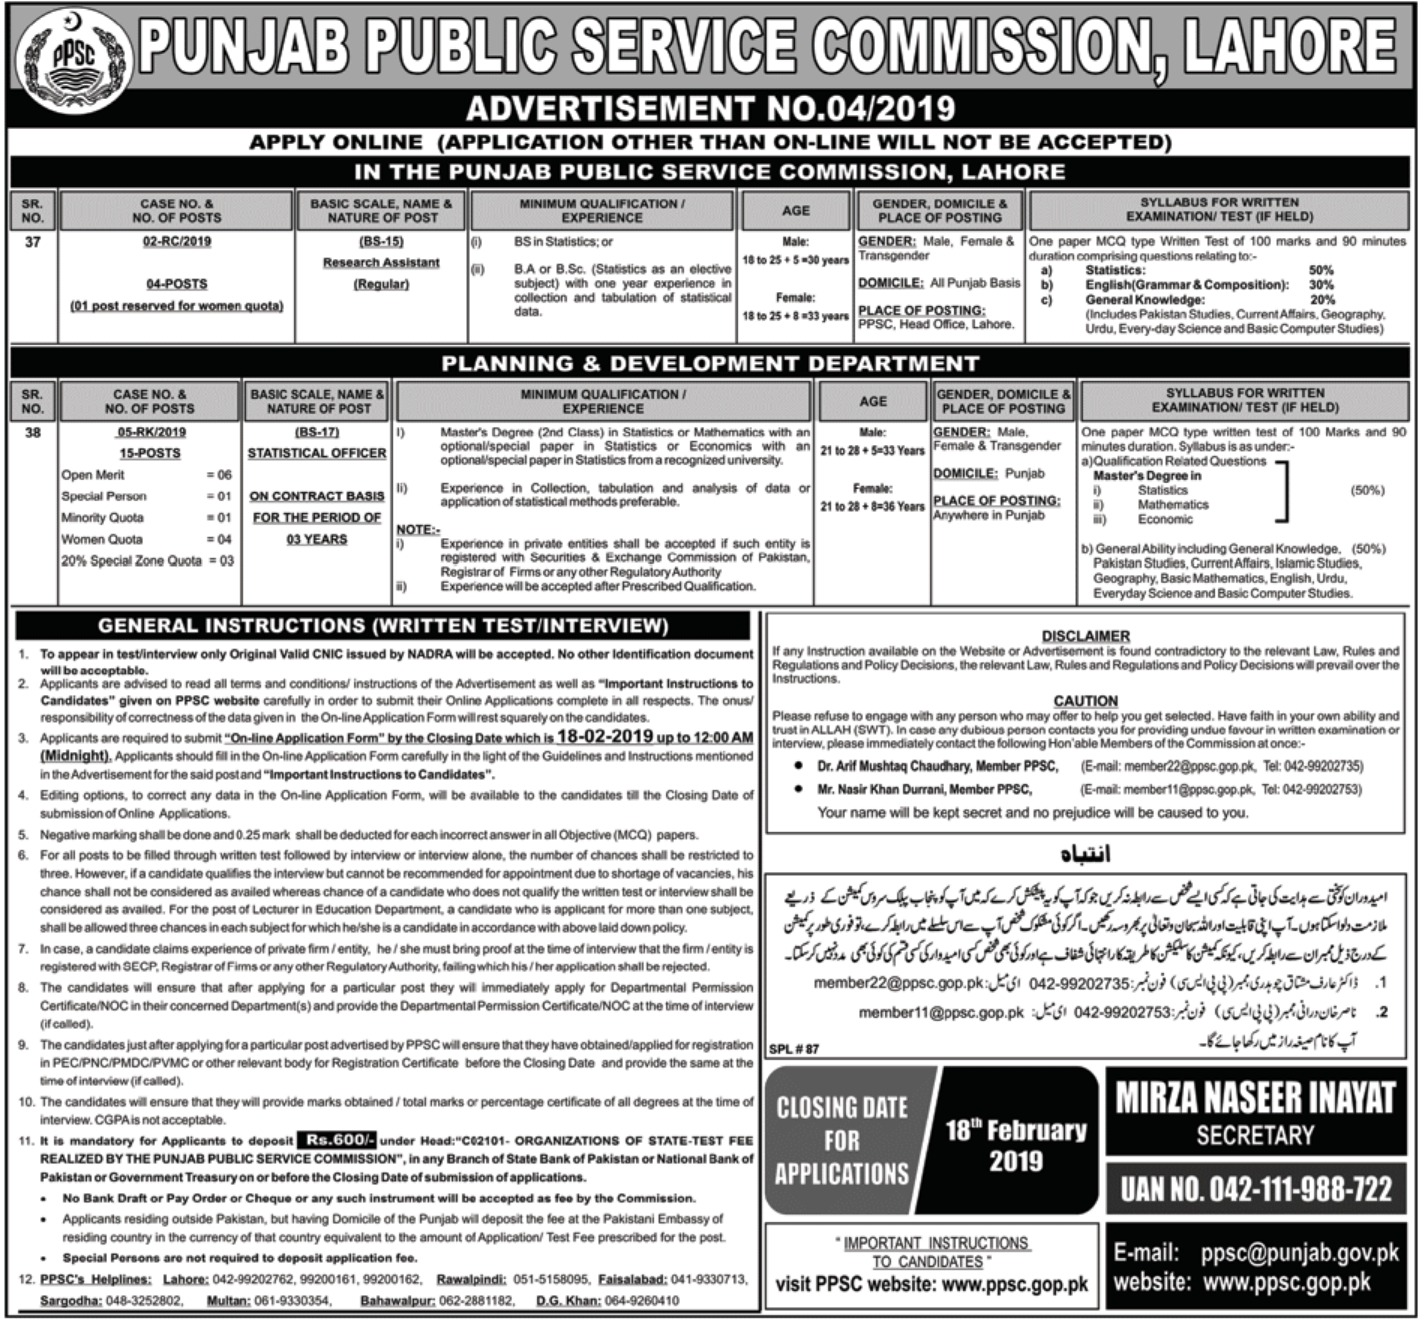 PPSC Jobs 04-2019 Punjab Public Service Commission